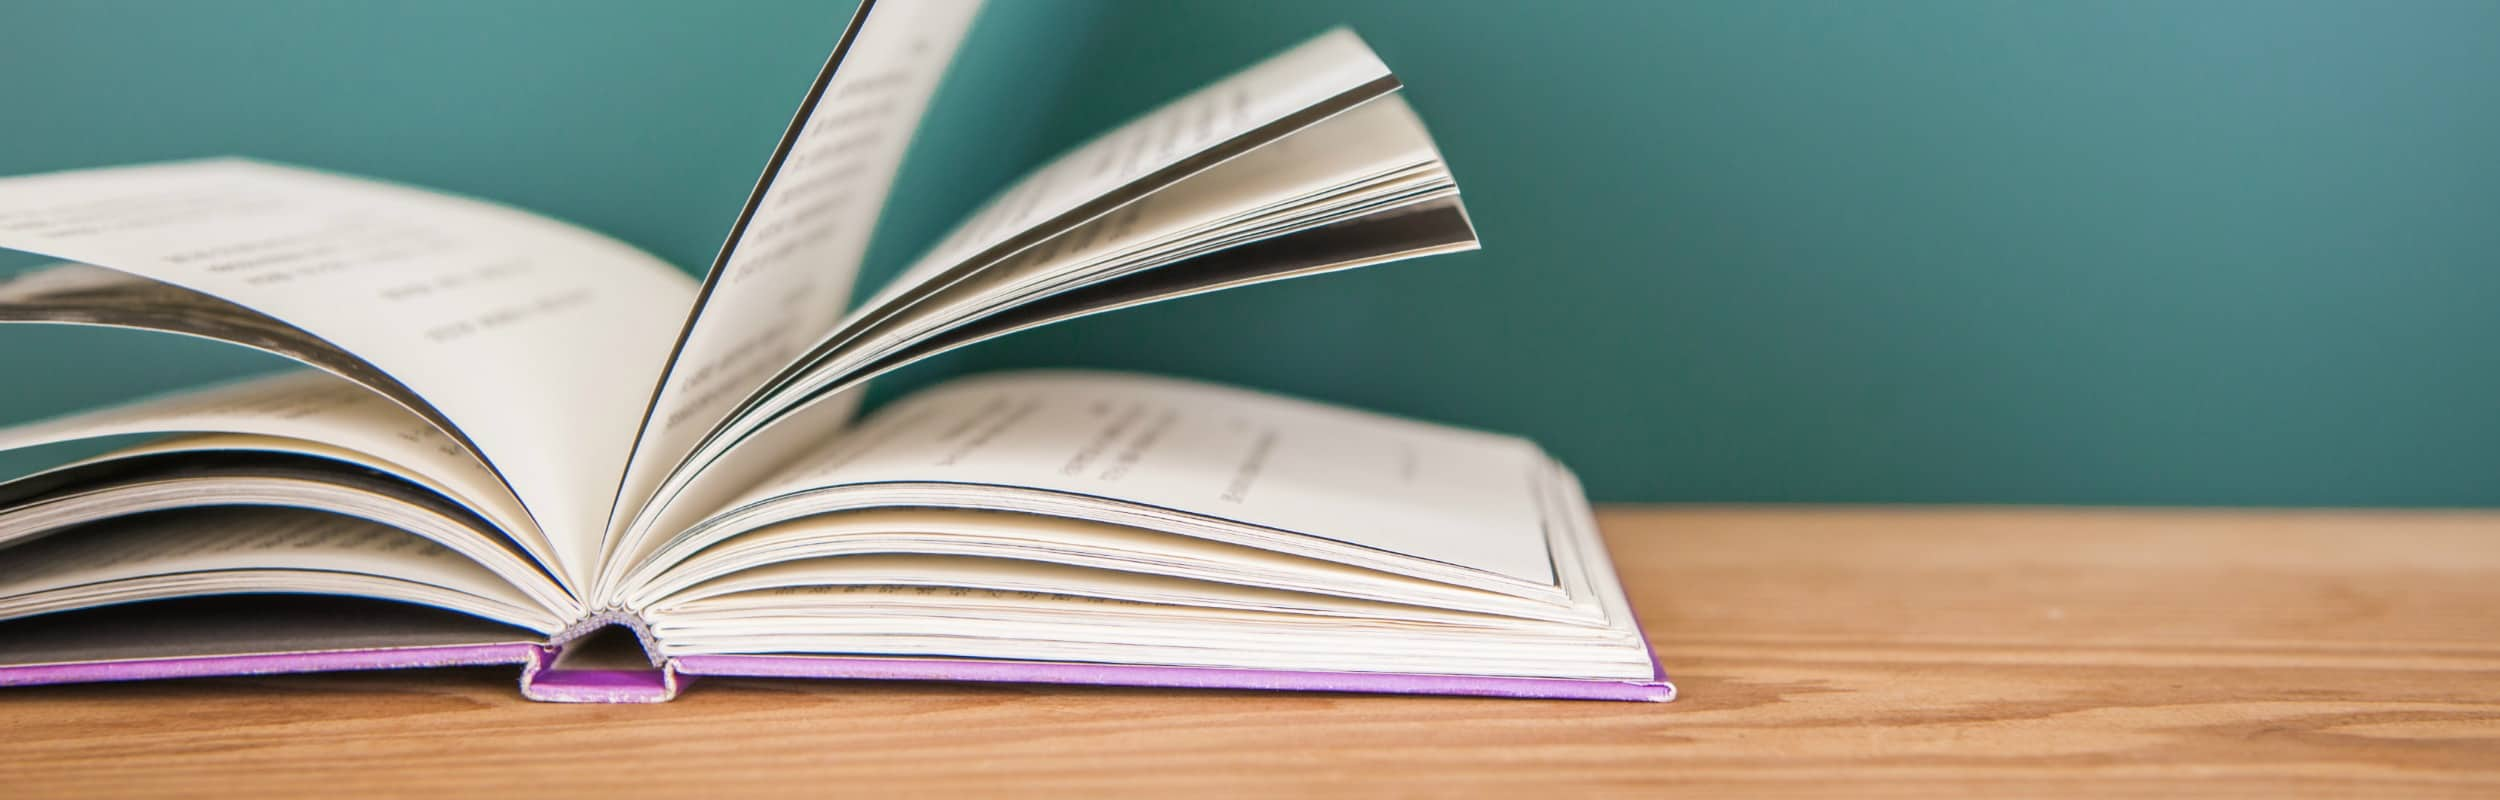 How to Help Your Teen Develop Good Study Habits